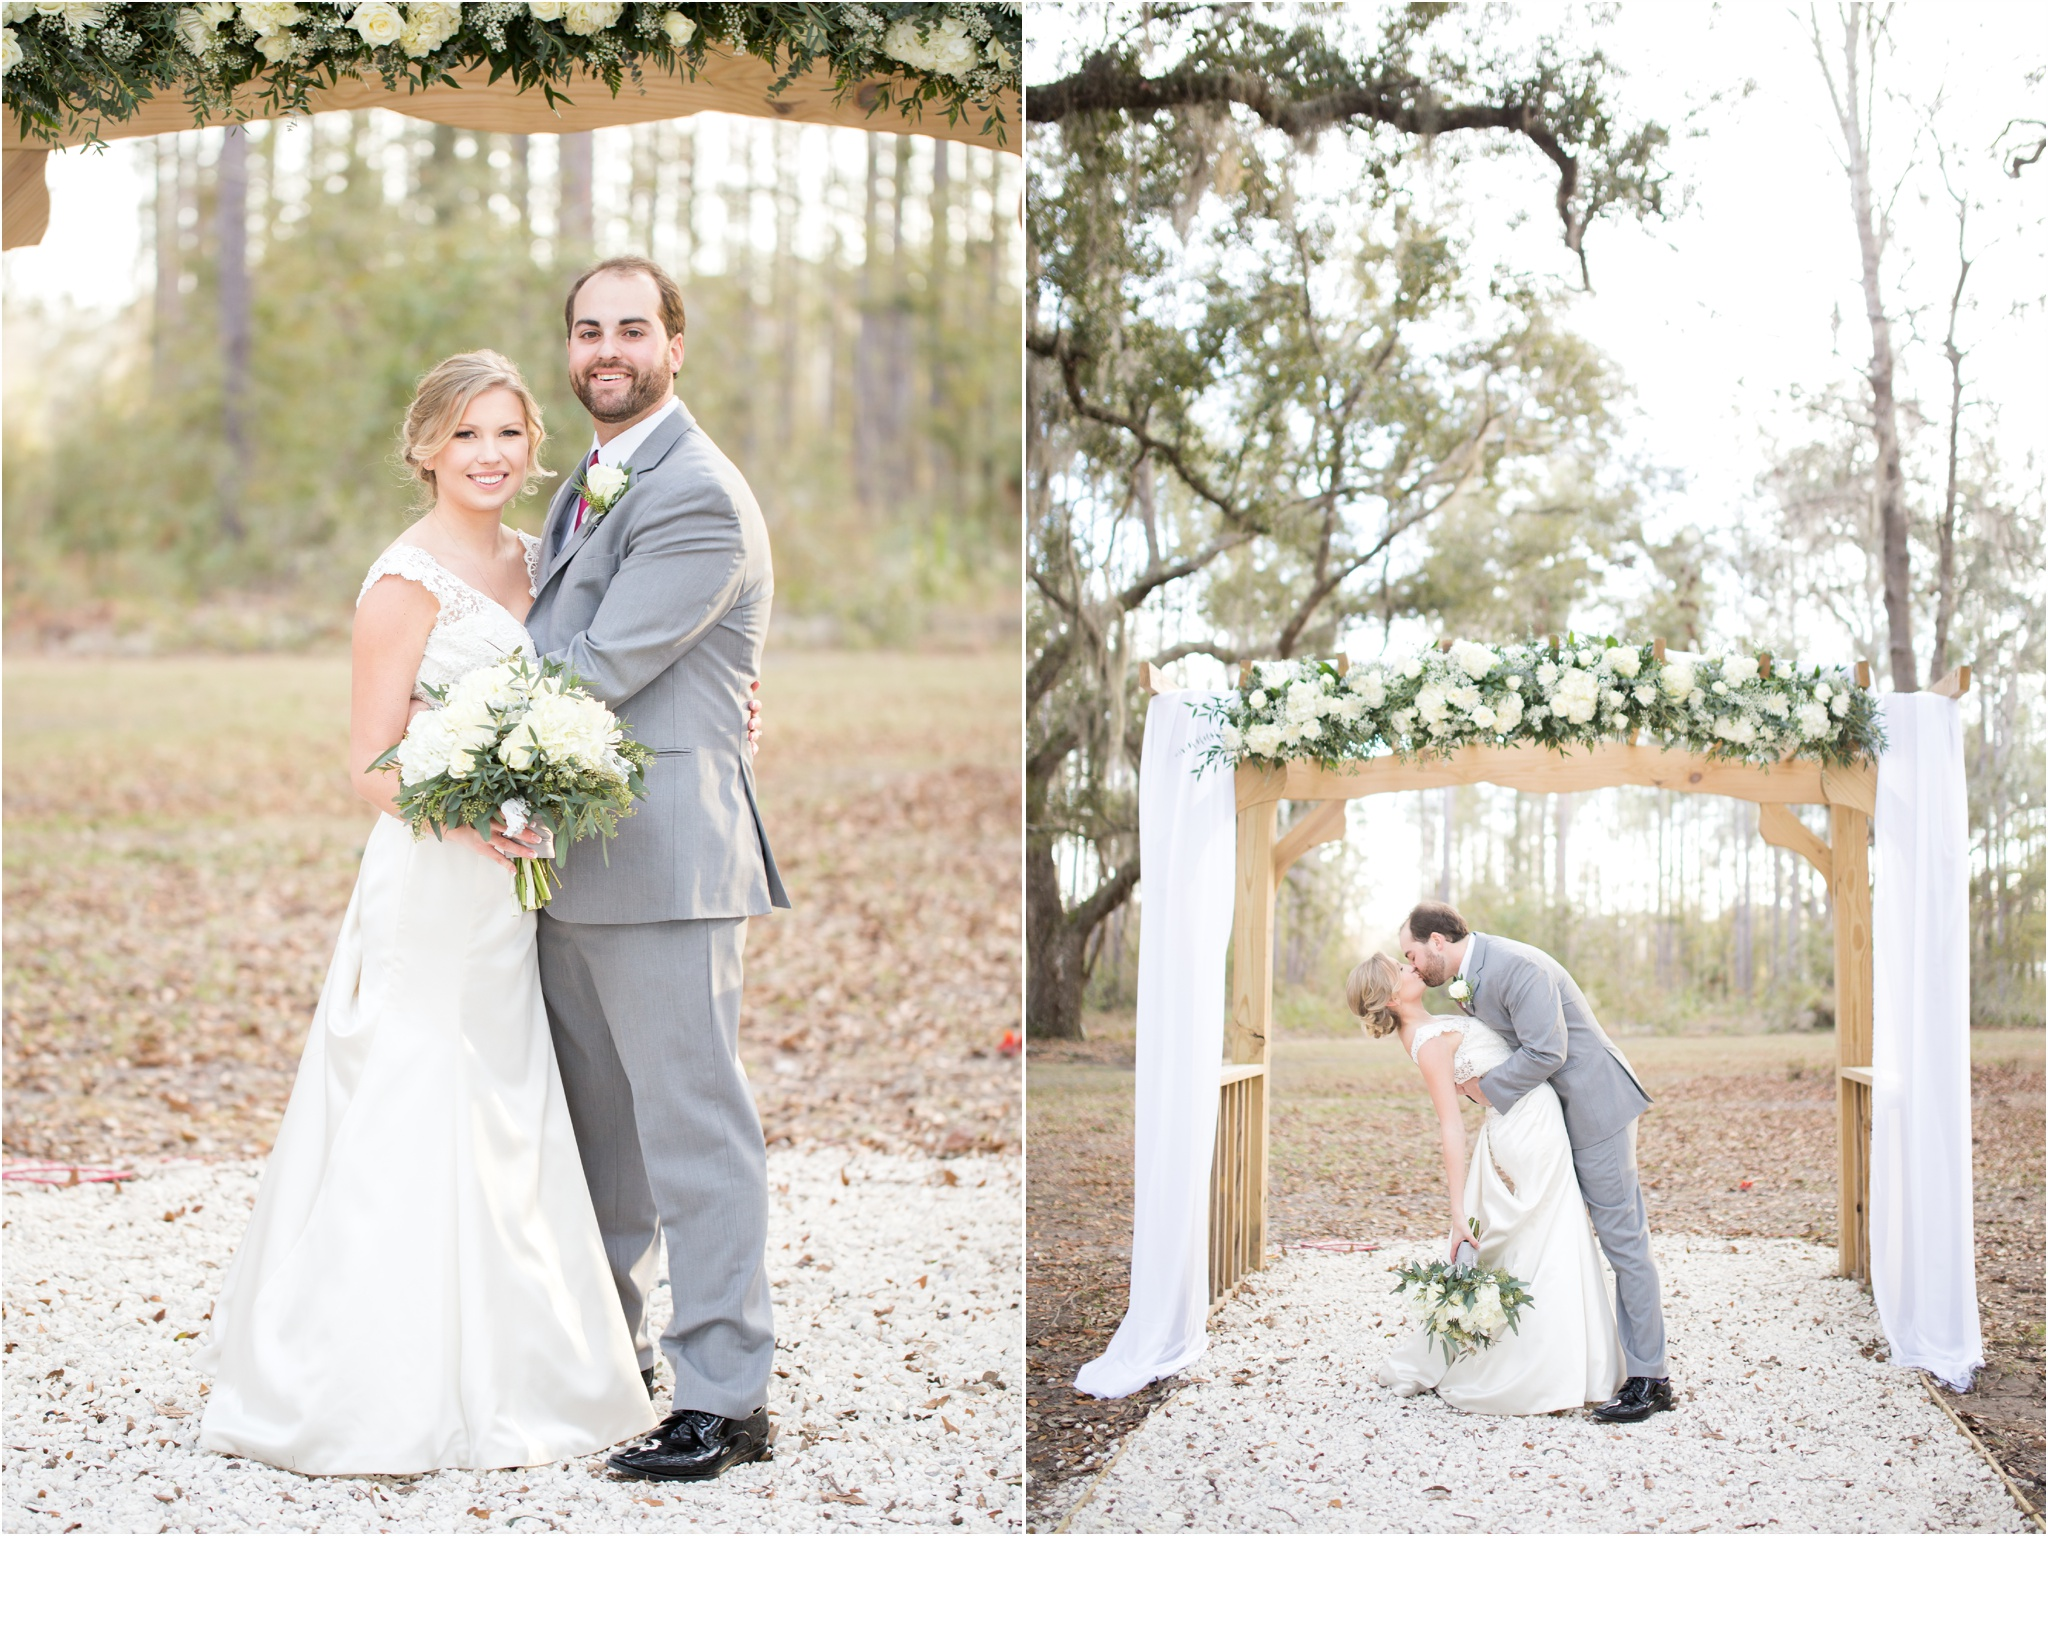 Rainey_Gregg_Photography_St._Simons_Island_Georgia_California_Wedding_Portrait_Photography_0492.jpg